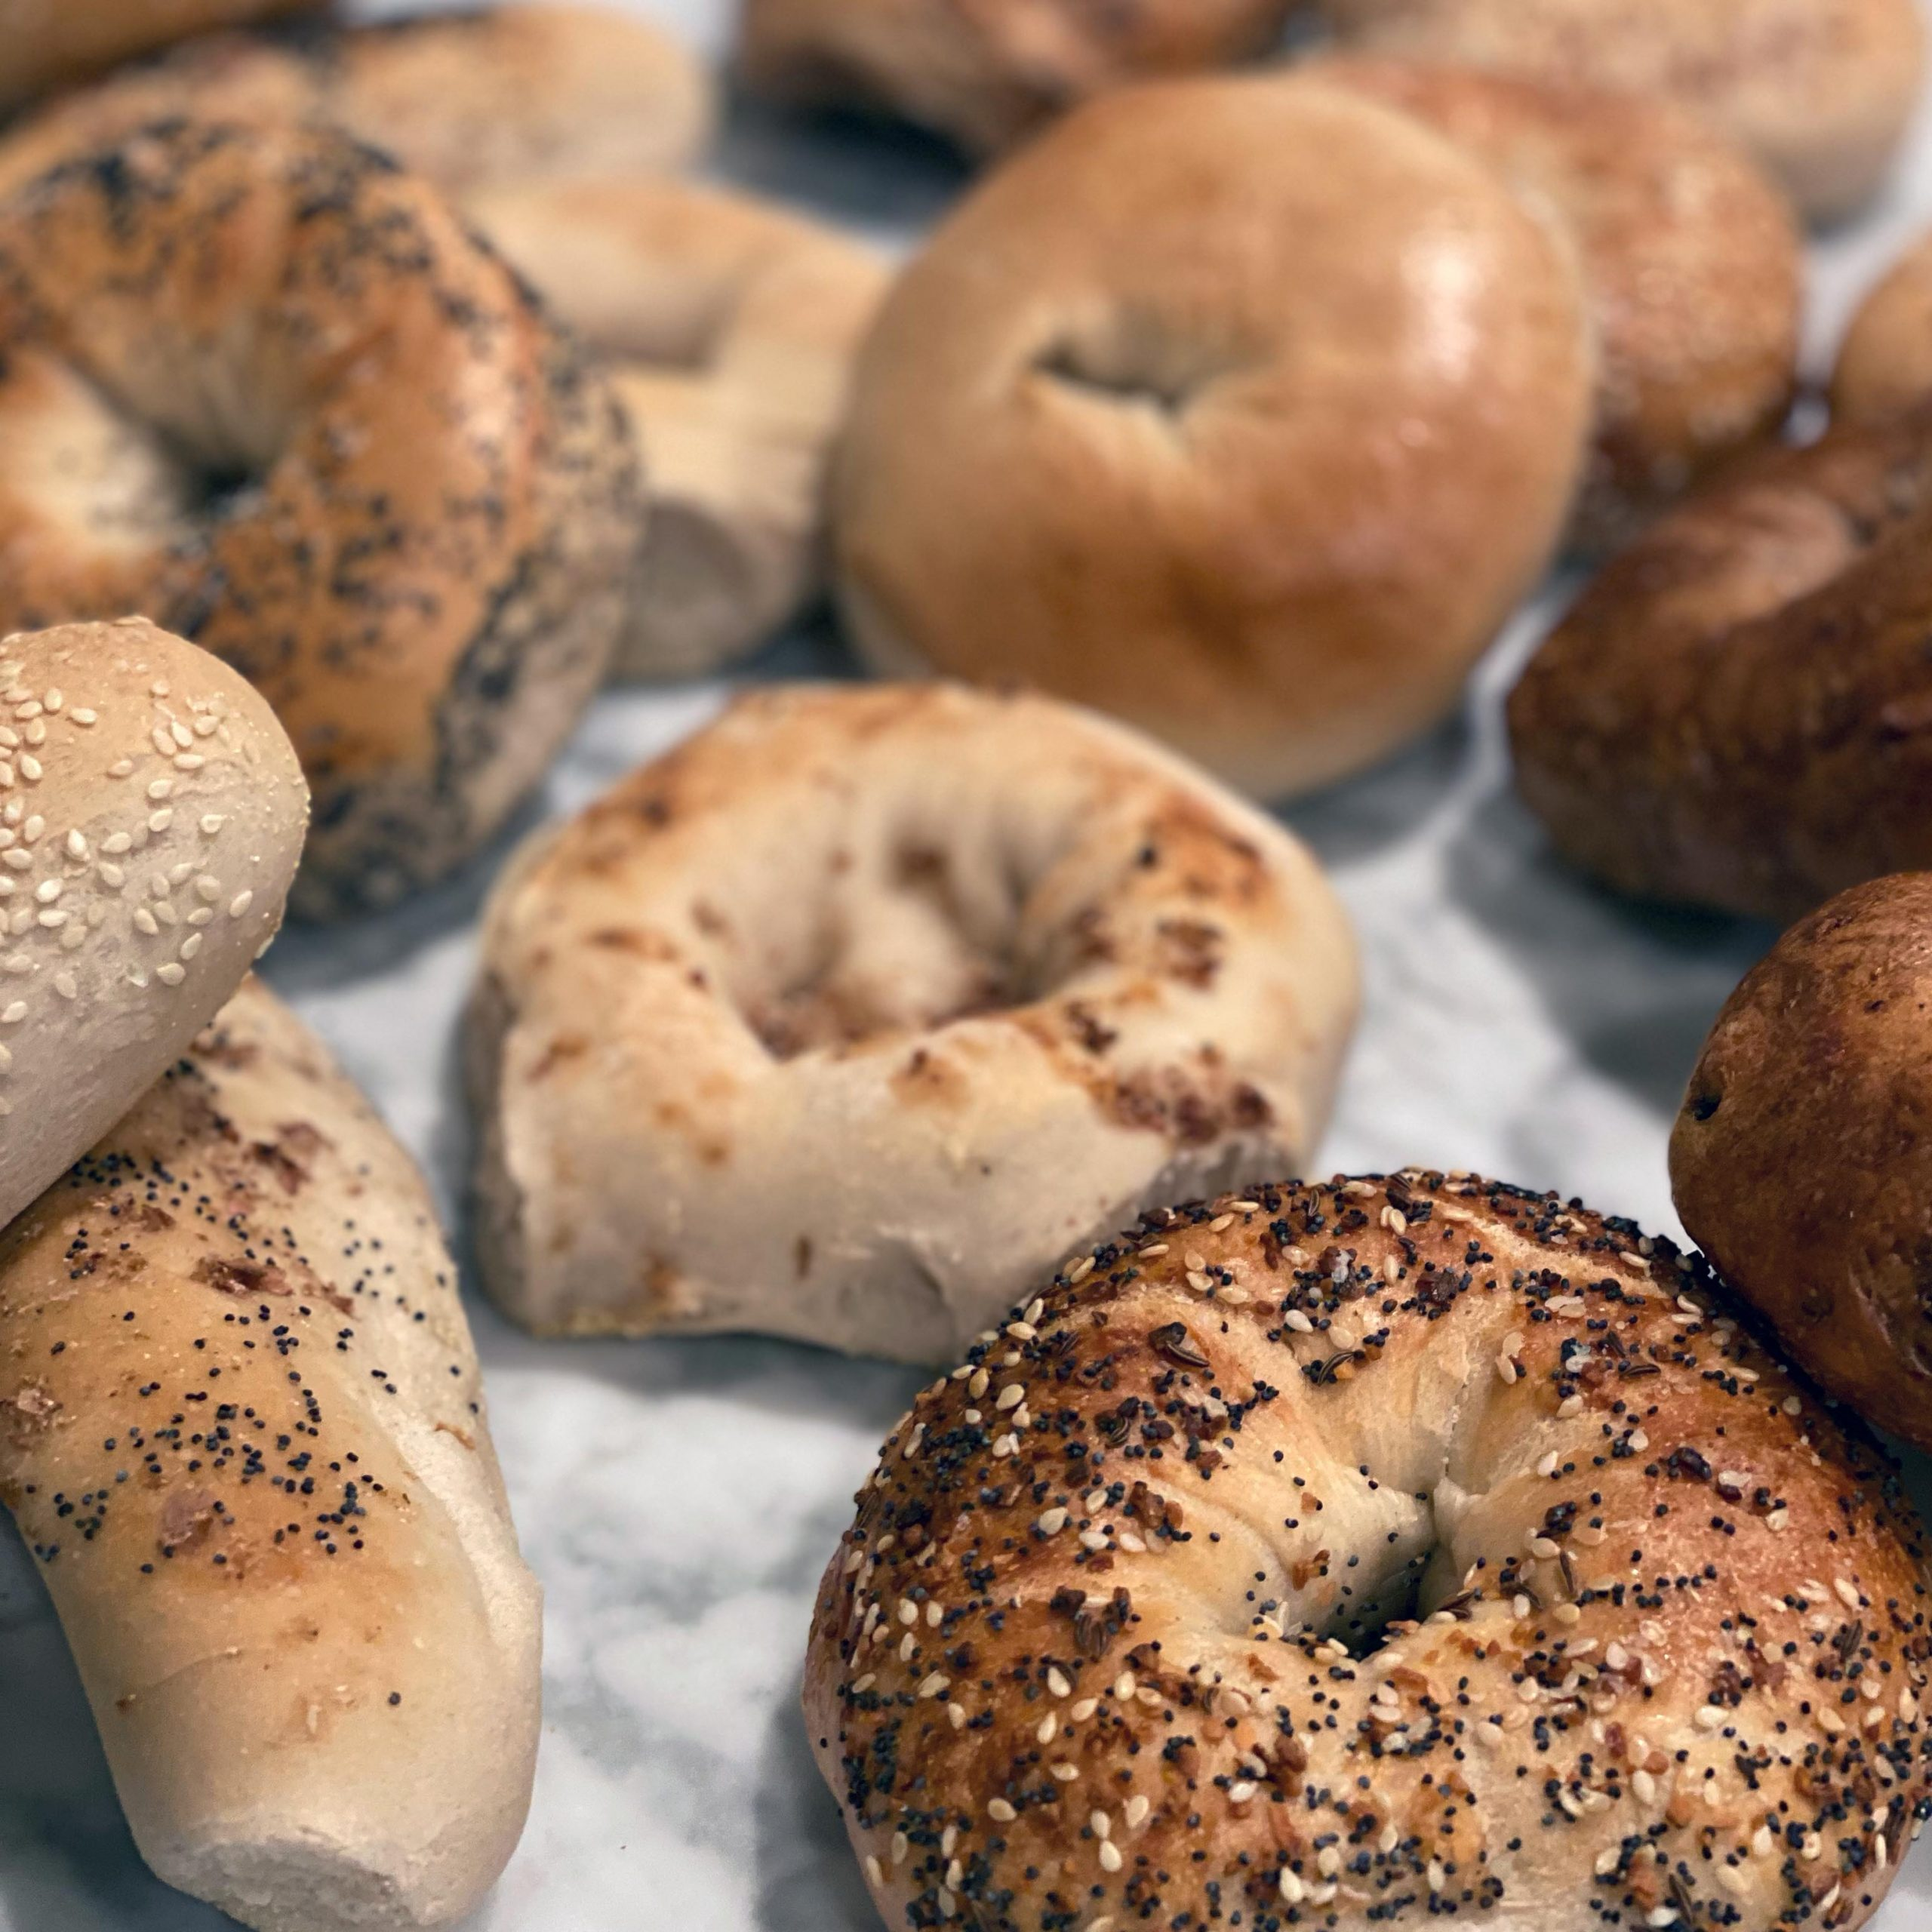 New York Bagel & Bialy Bagels Feature